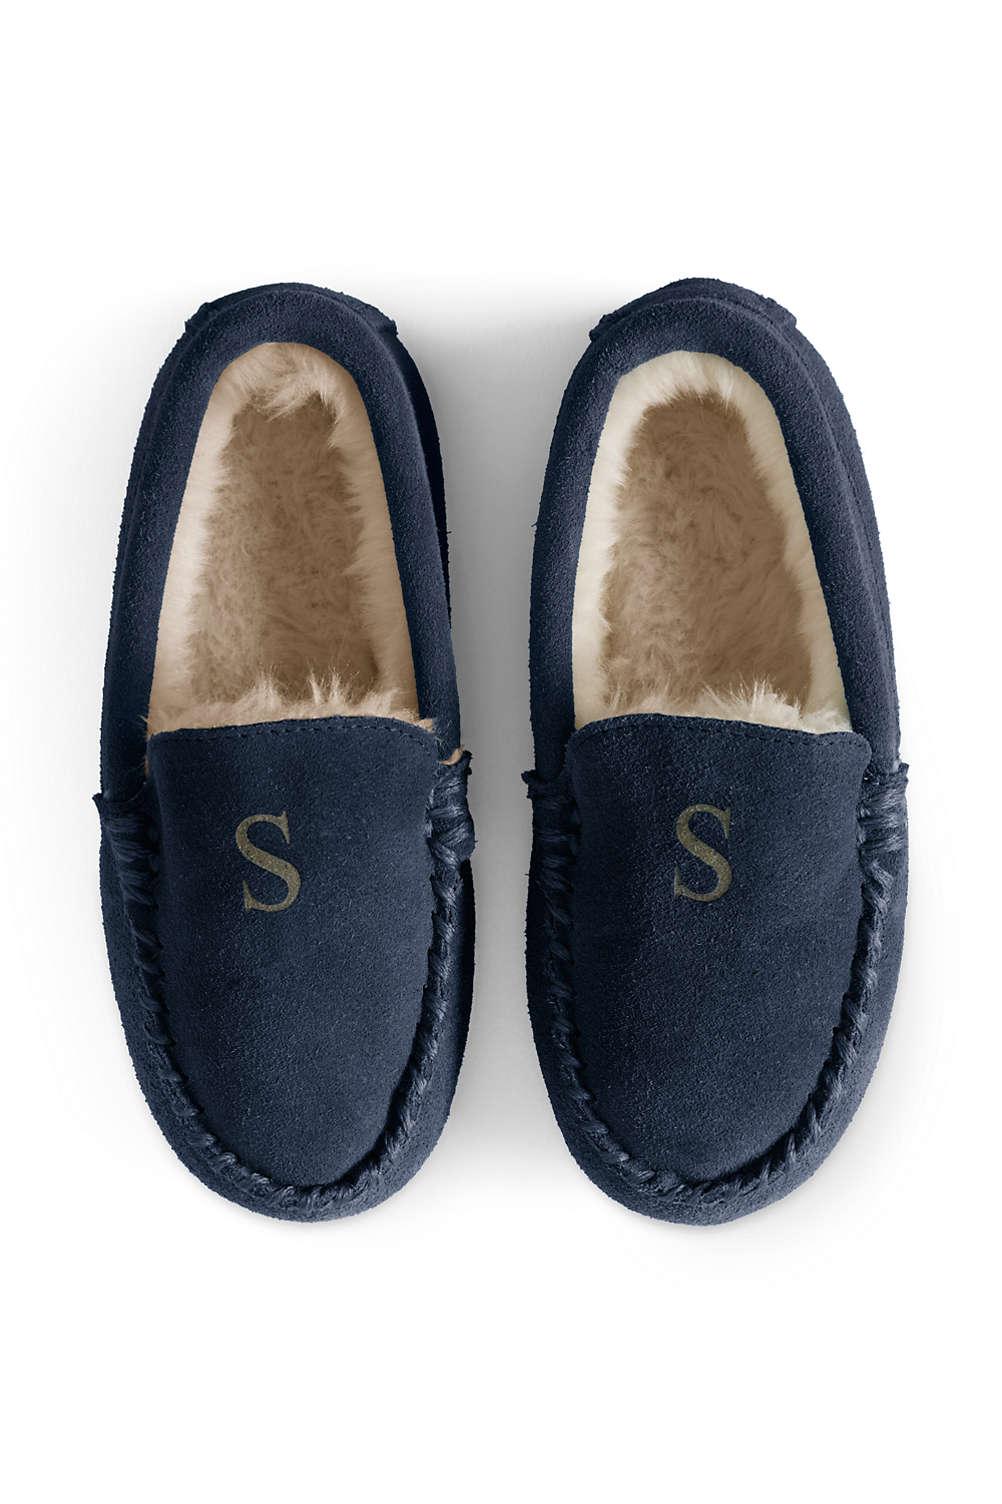 d66bc204e6db8 Kids Suede Leather Moccasin Slippers from Lands' End